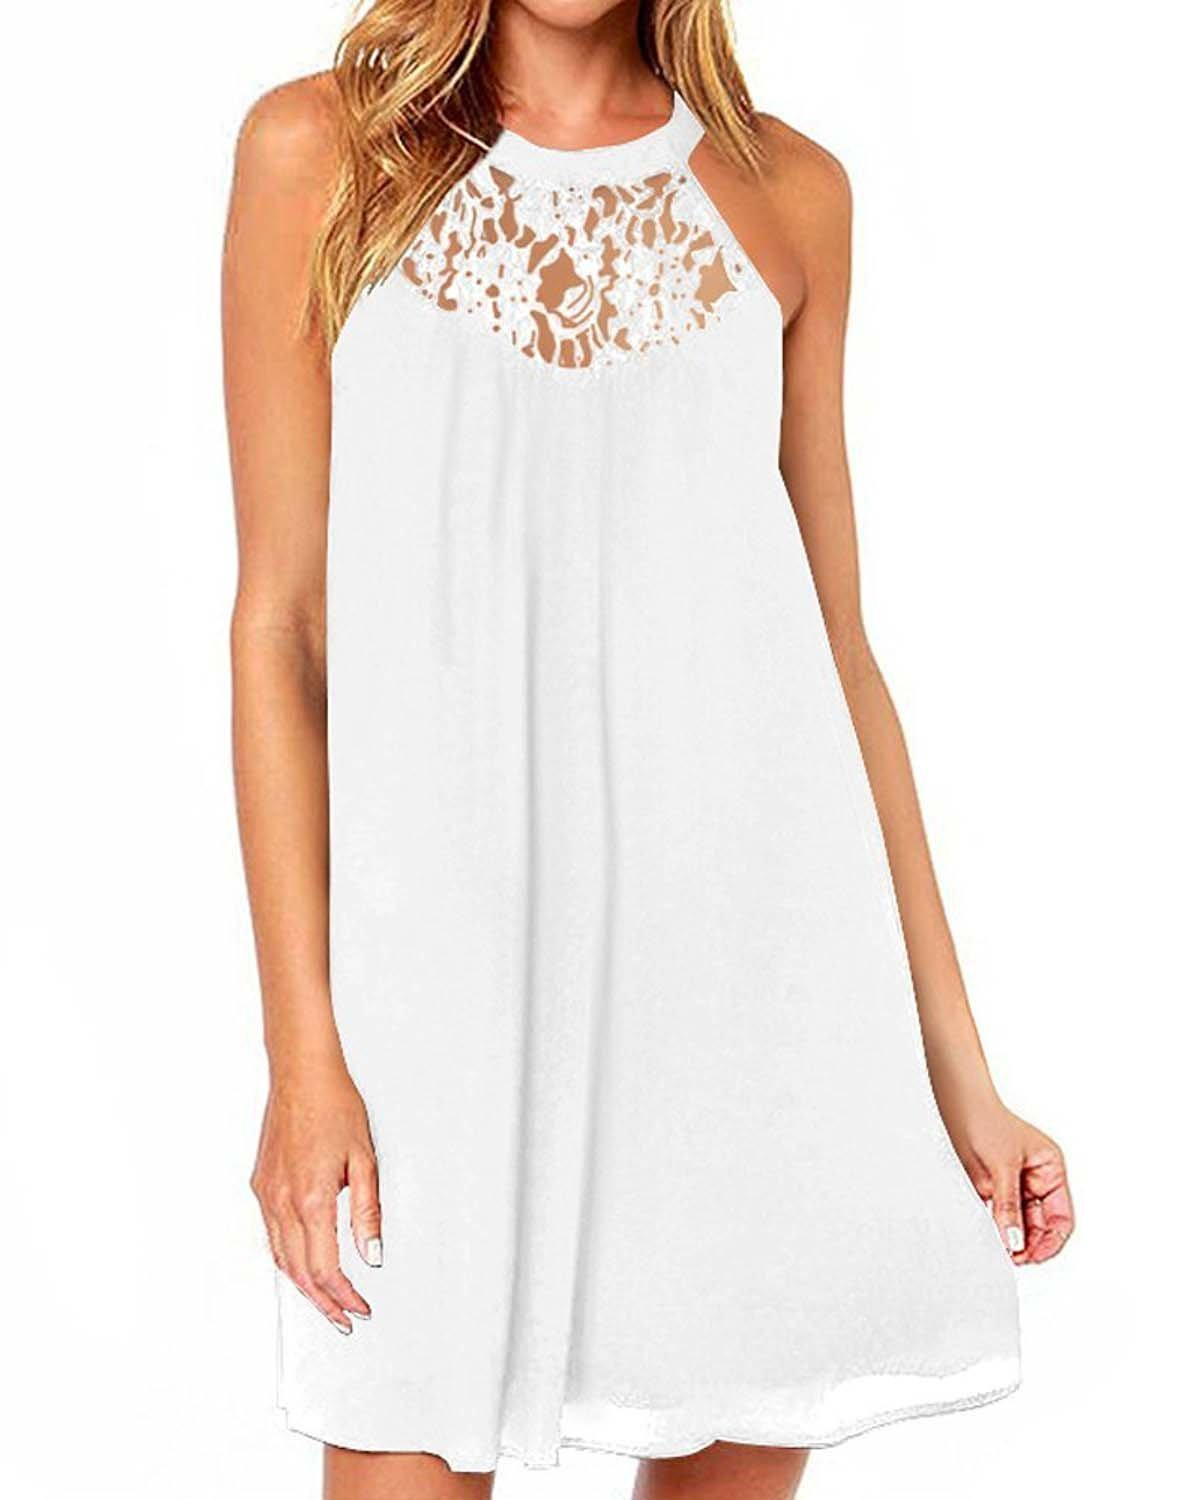 24bf745033d51 CCBETTER Women s Summer Casual Sleeveless Halter Neck Lace Patchwork  Chiffion Drees White